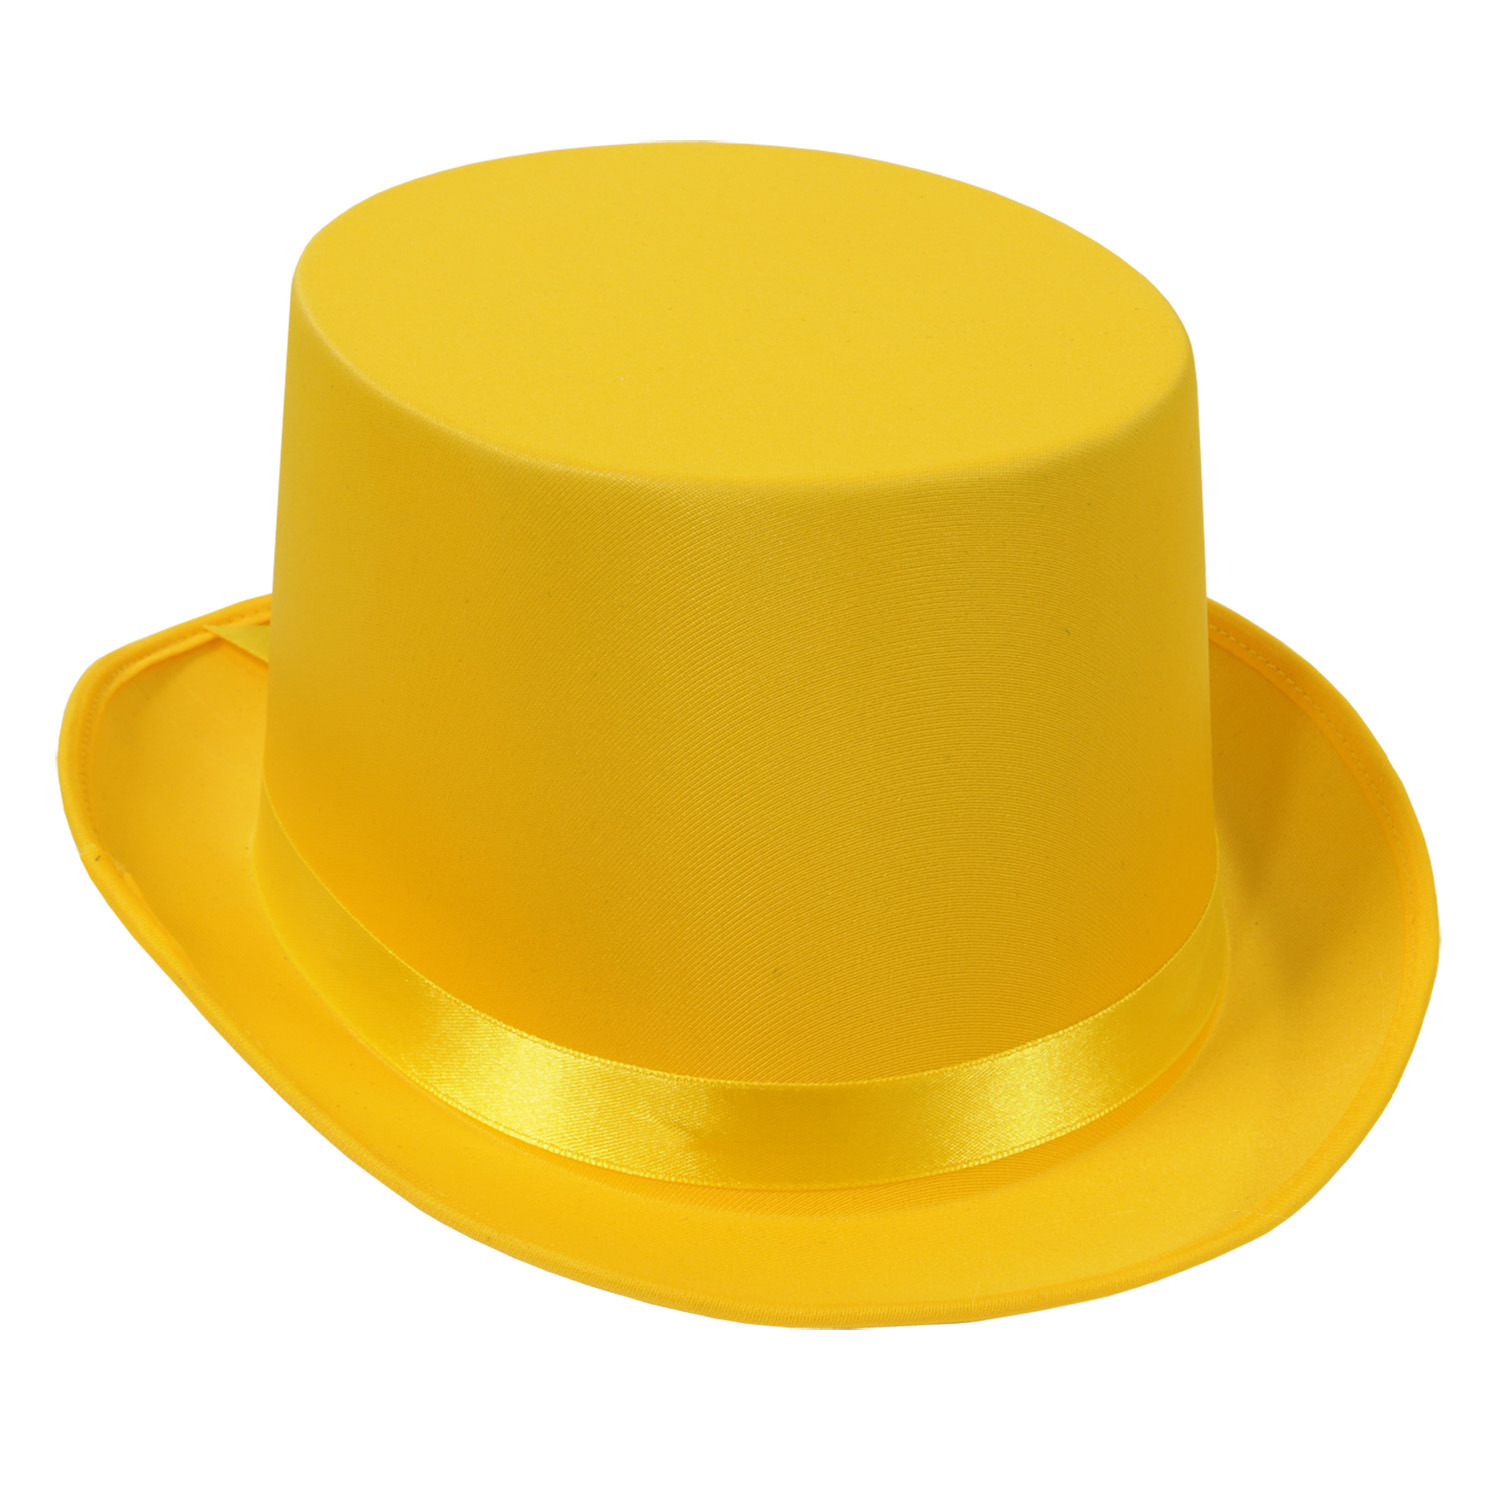 Satin Sleek Top Hat (Pack of 6) Satin, Top Hat, Satin Sleek Top Hat, Yellow, New Years Eve, Silk like, Wholesale party favors, Inexpensive party supplies, Party Goods, Cheap, Bulk, NYE, Favors